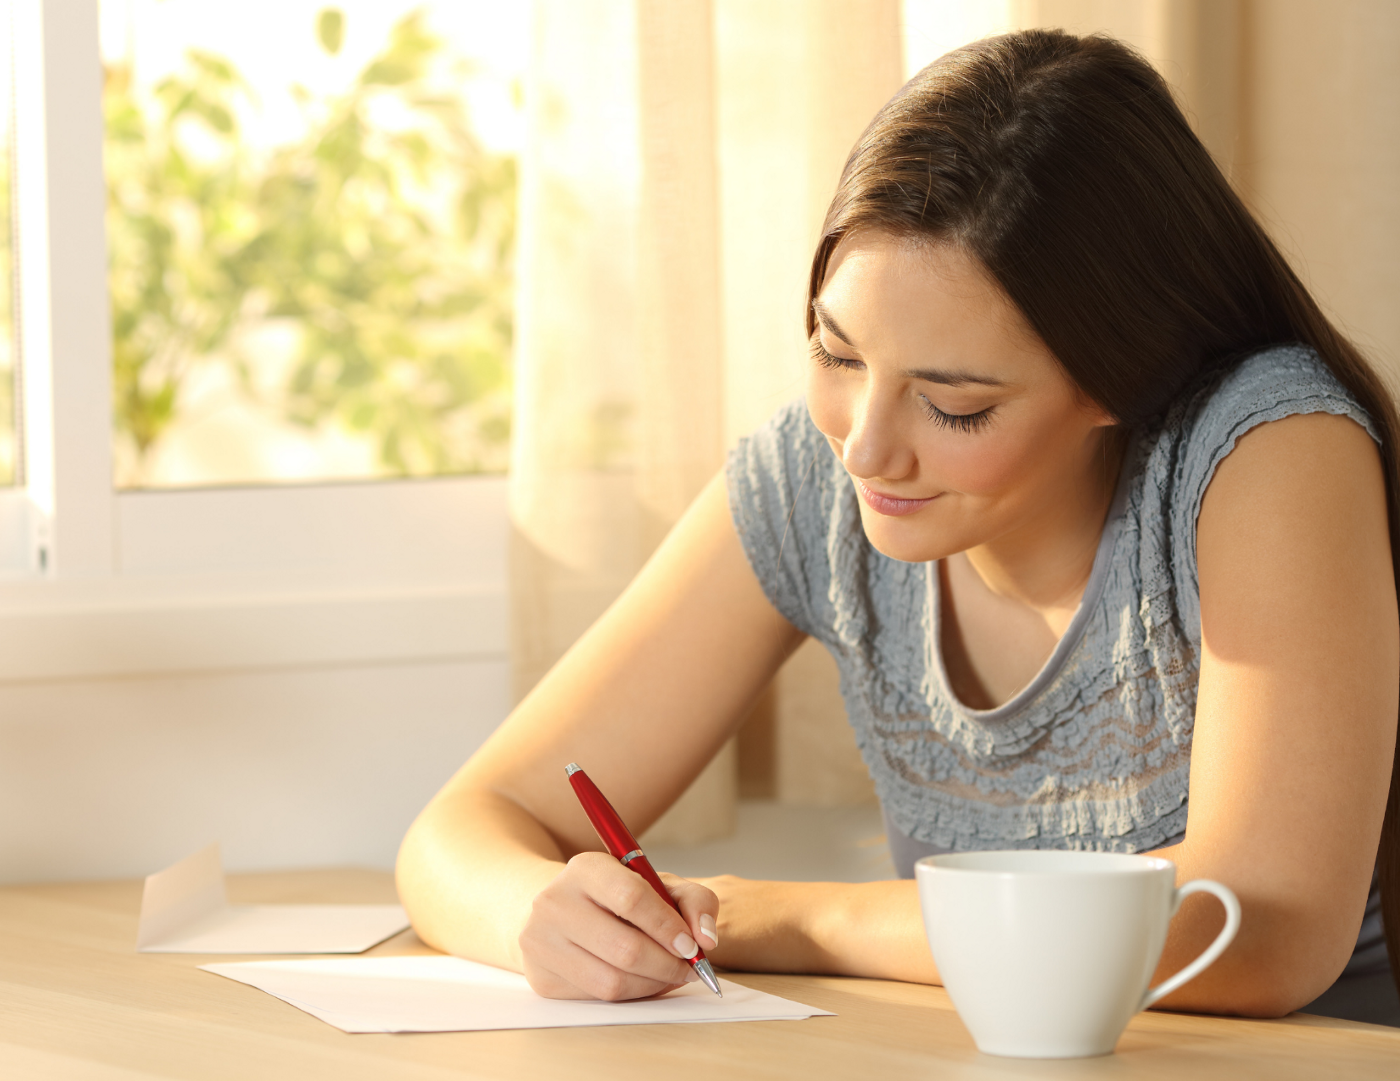 A woman seated at a table writes herself a letter.